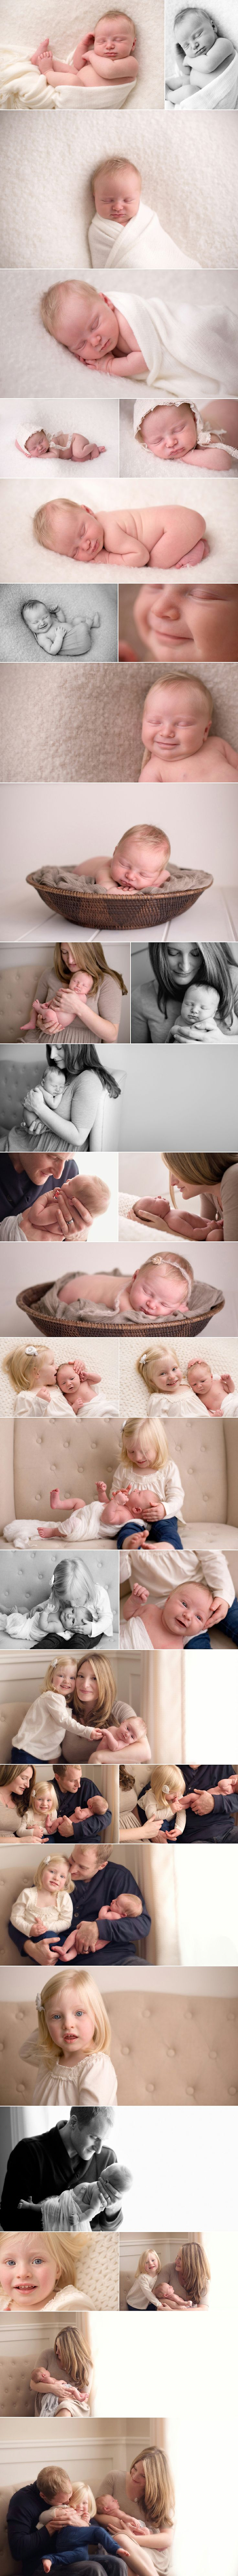 14th pic down or Mamma pic #3. Love the moment, expression, and soft light of this image.